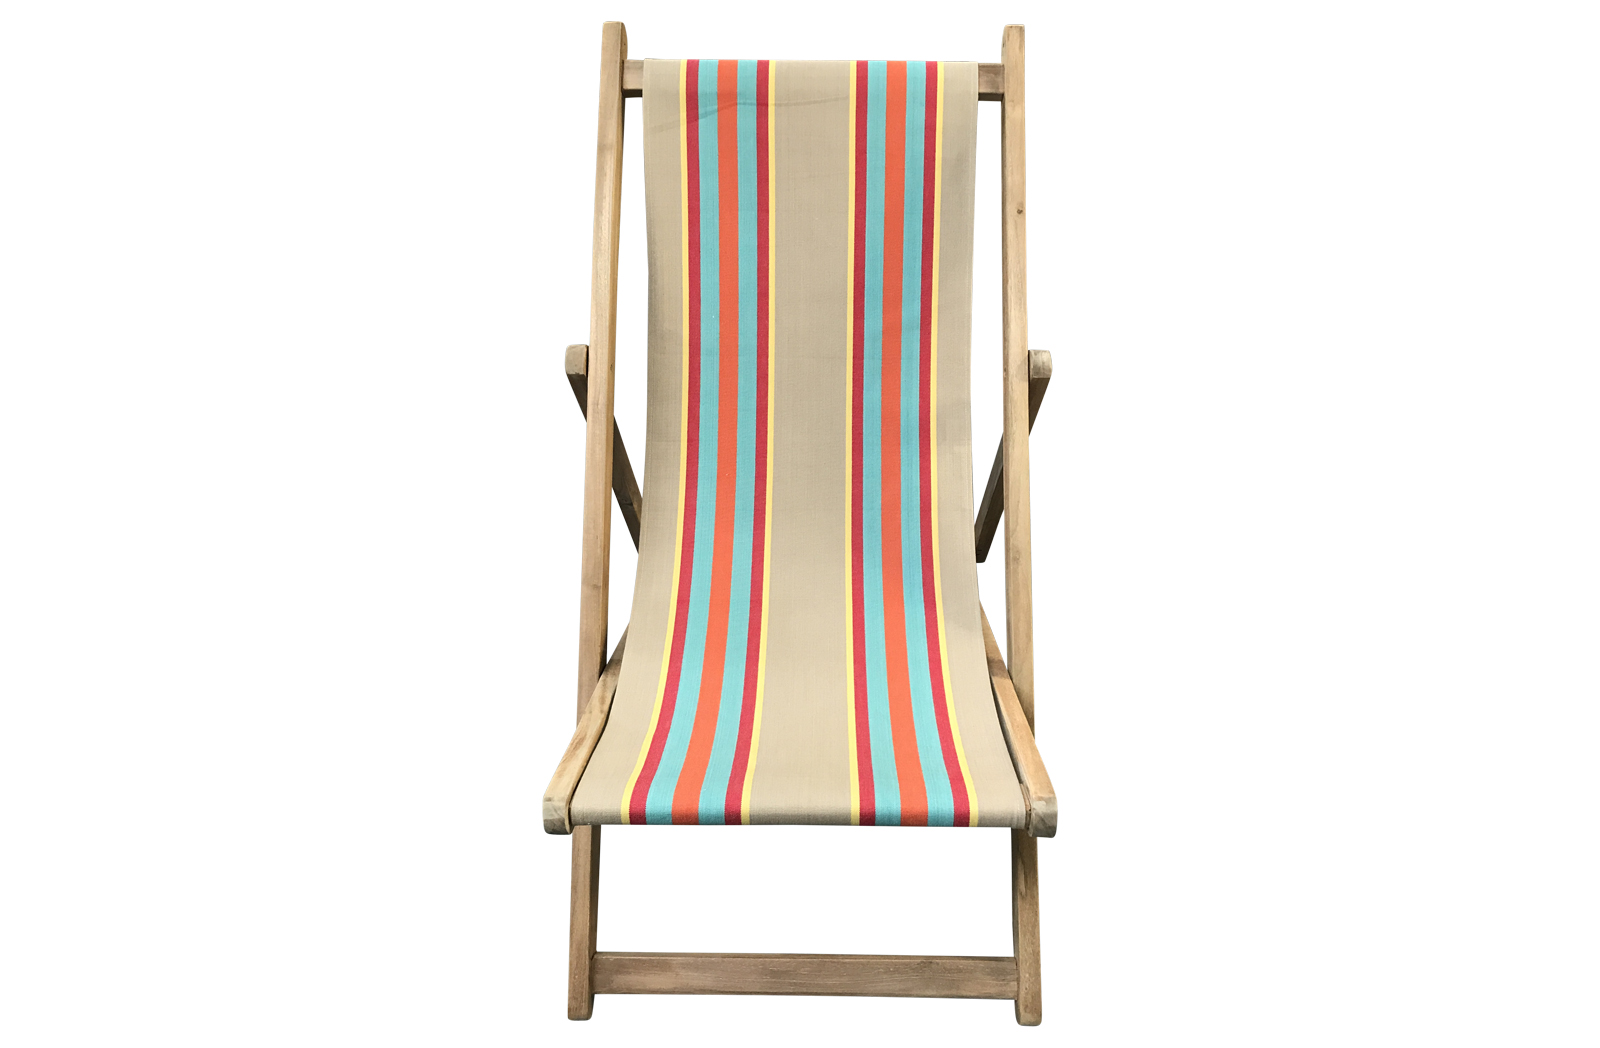 fawn, terracotta, turquoise - Deckchairs | Buy Folding Wooden Deck Chairs